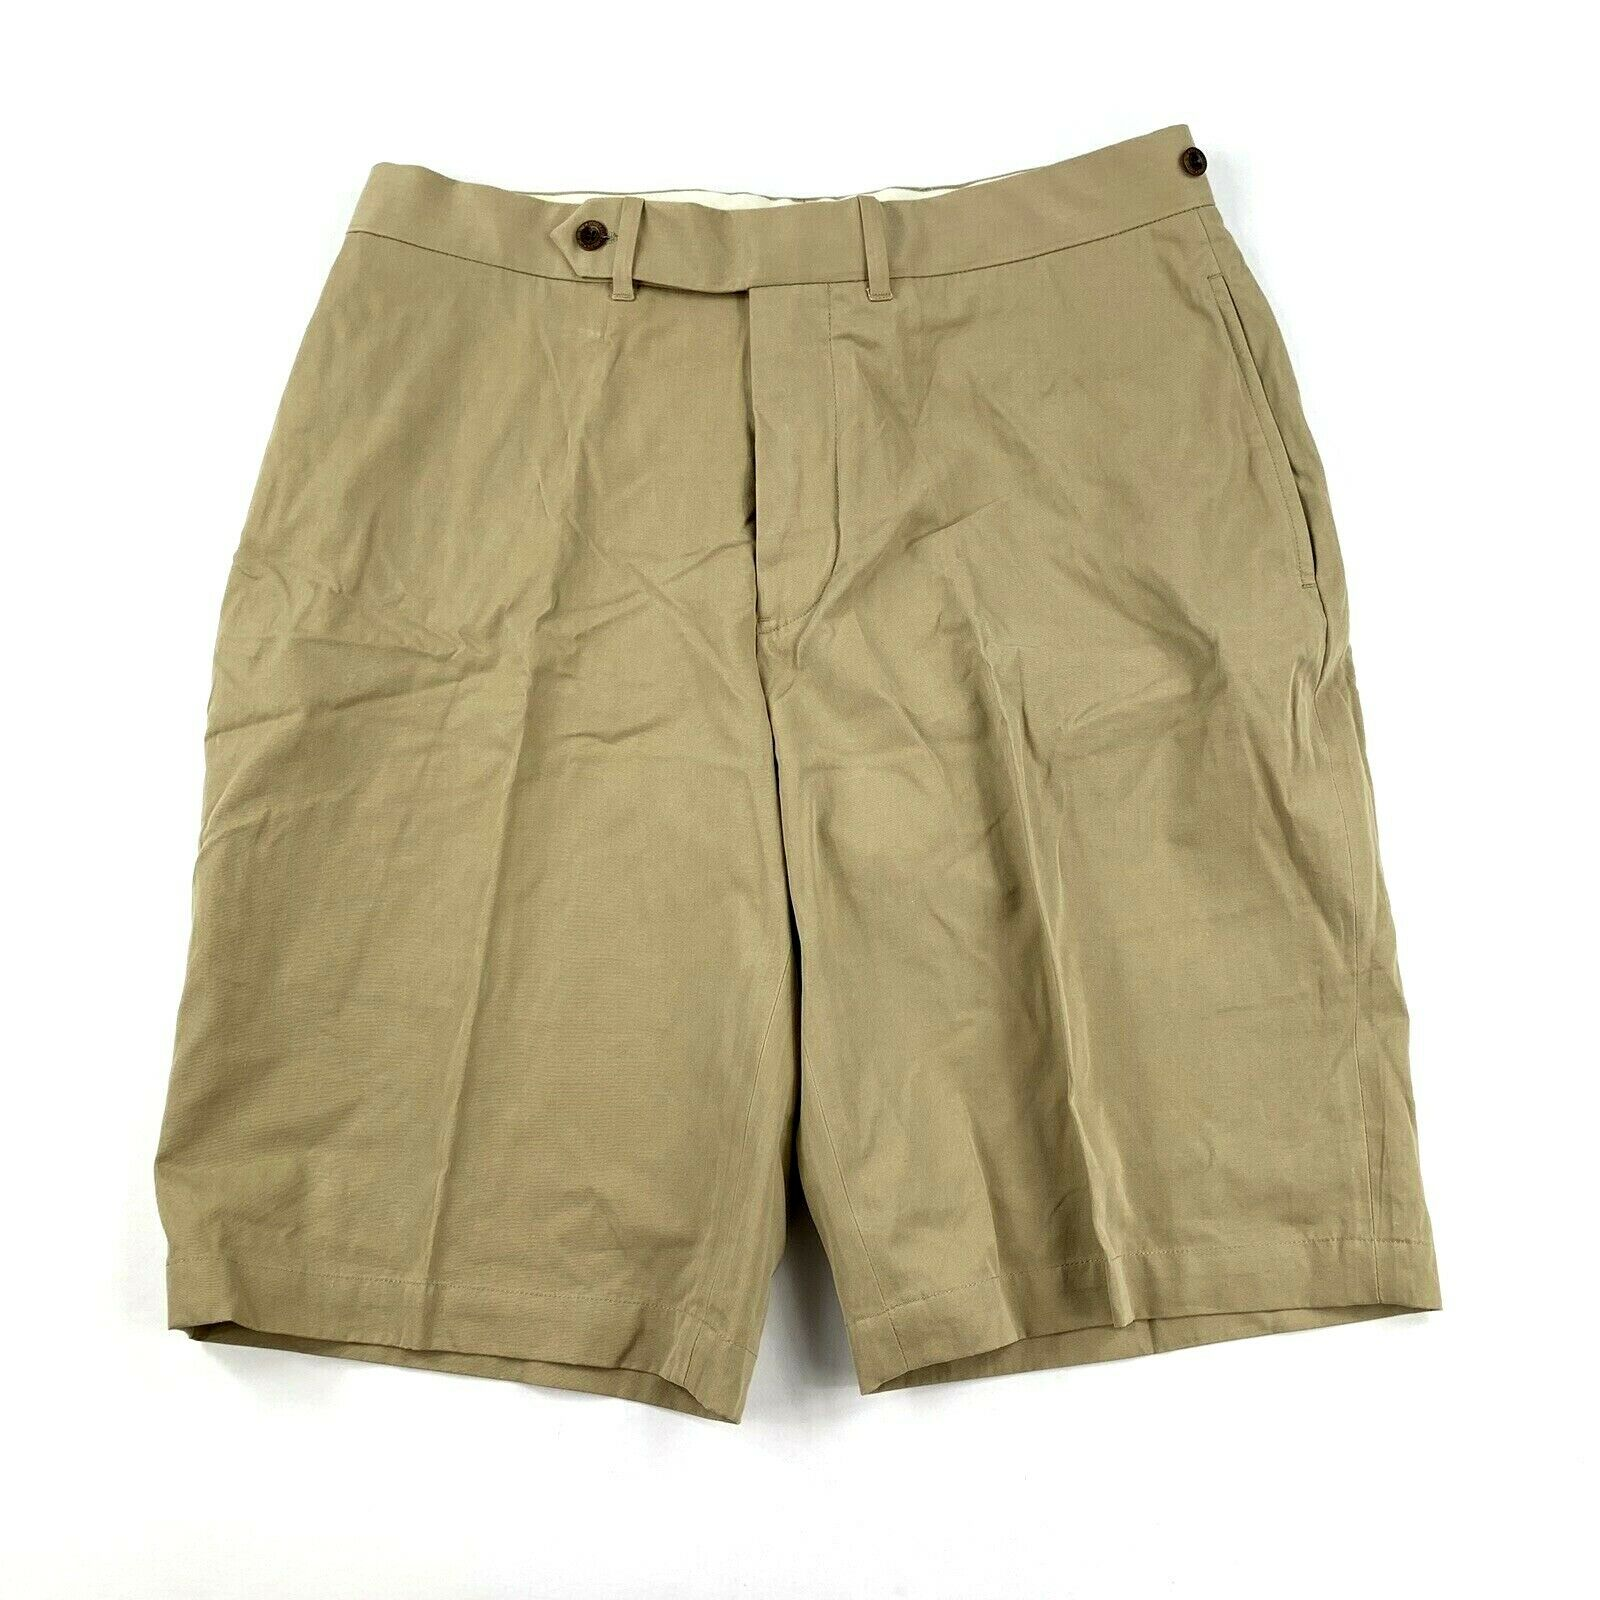 345e769c3b Polo Ralph Lauren Mens 32 Shorts Khaki New Silk npuxnw20792-Shorts ...